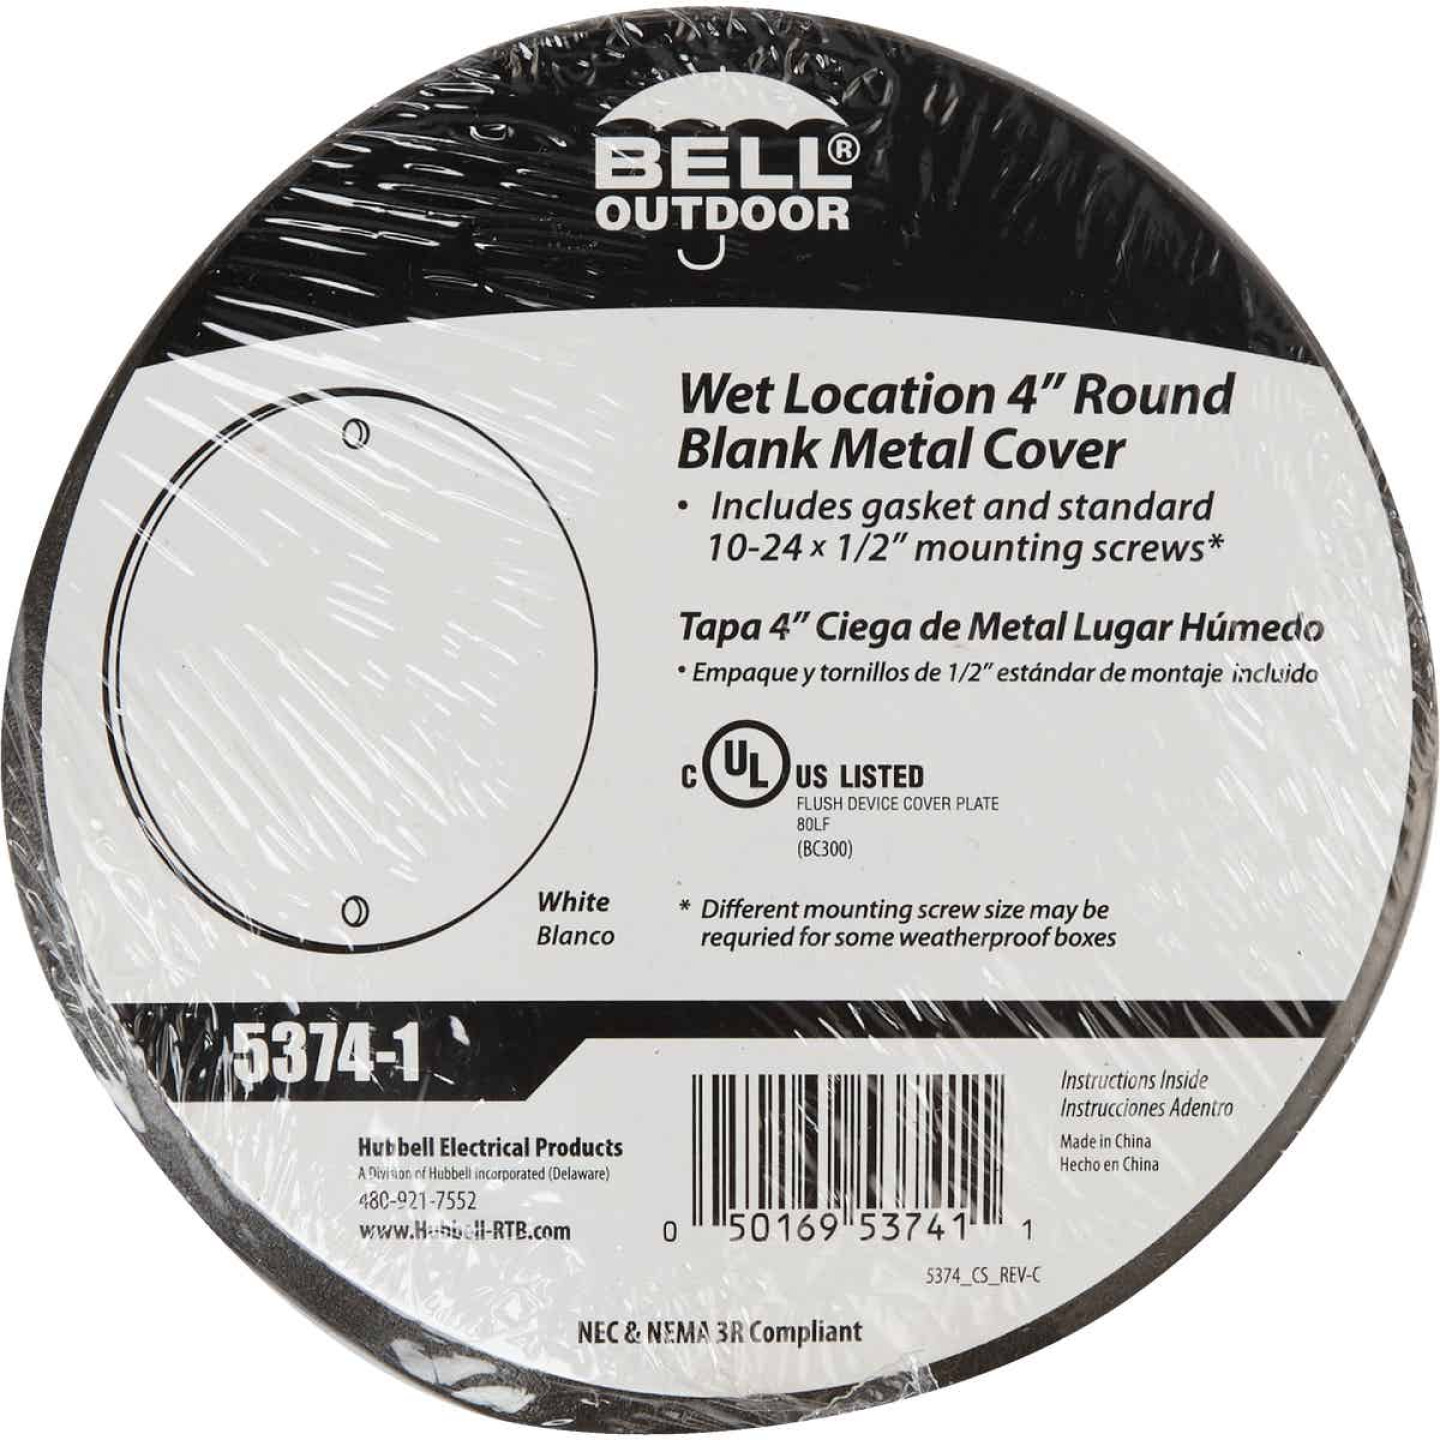 Bell Single Gang Round Die-Cast Metal White Blank Outdoor Box Cover, Shrink Wrapped Image 2